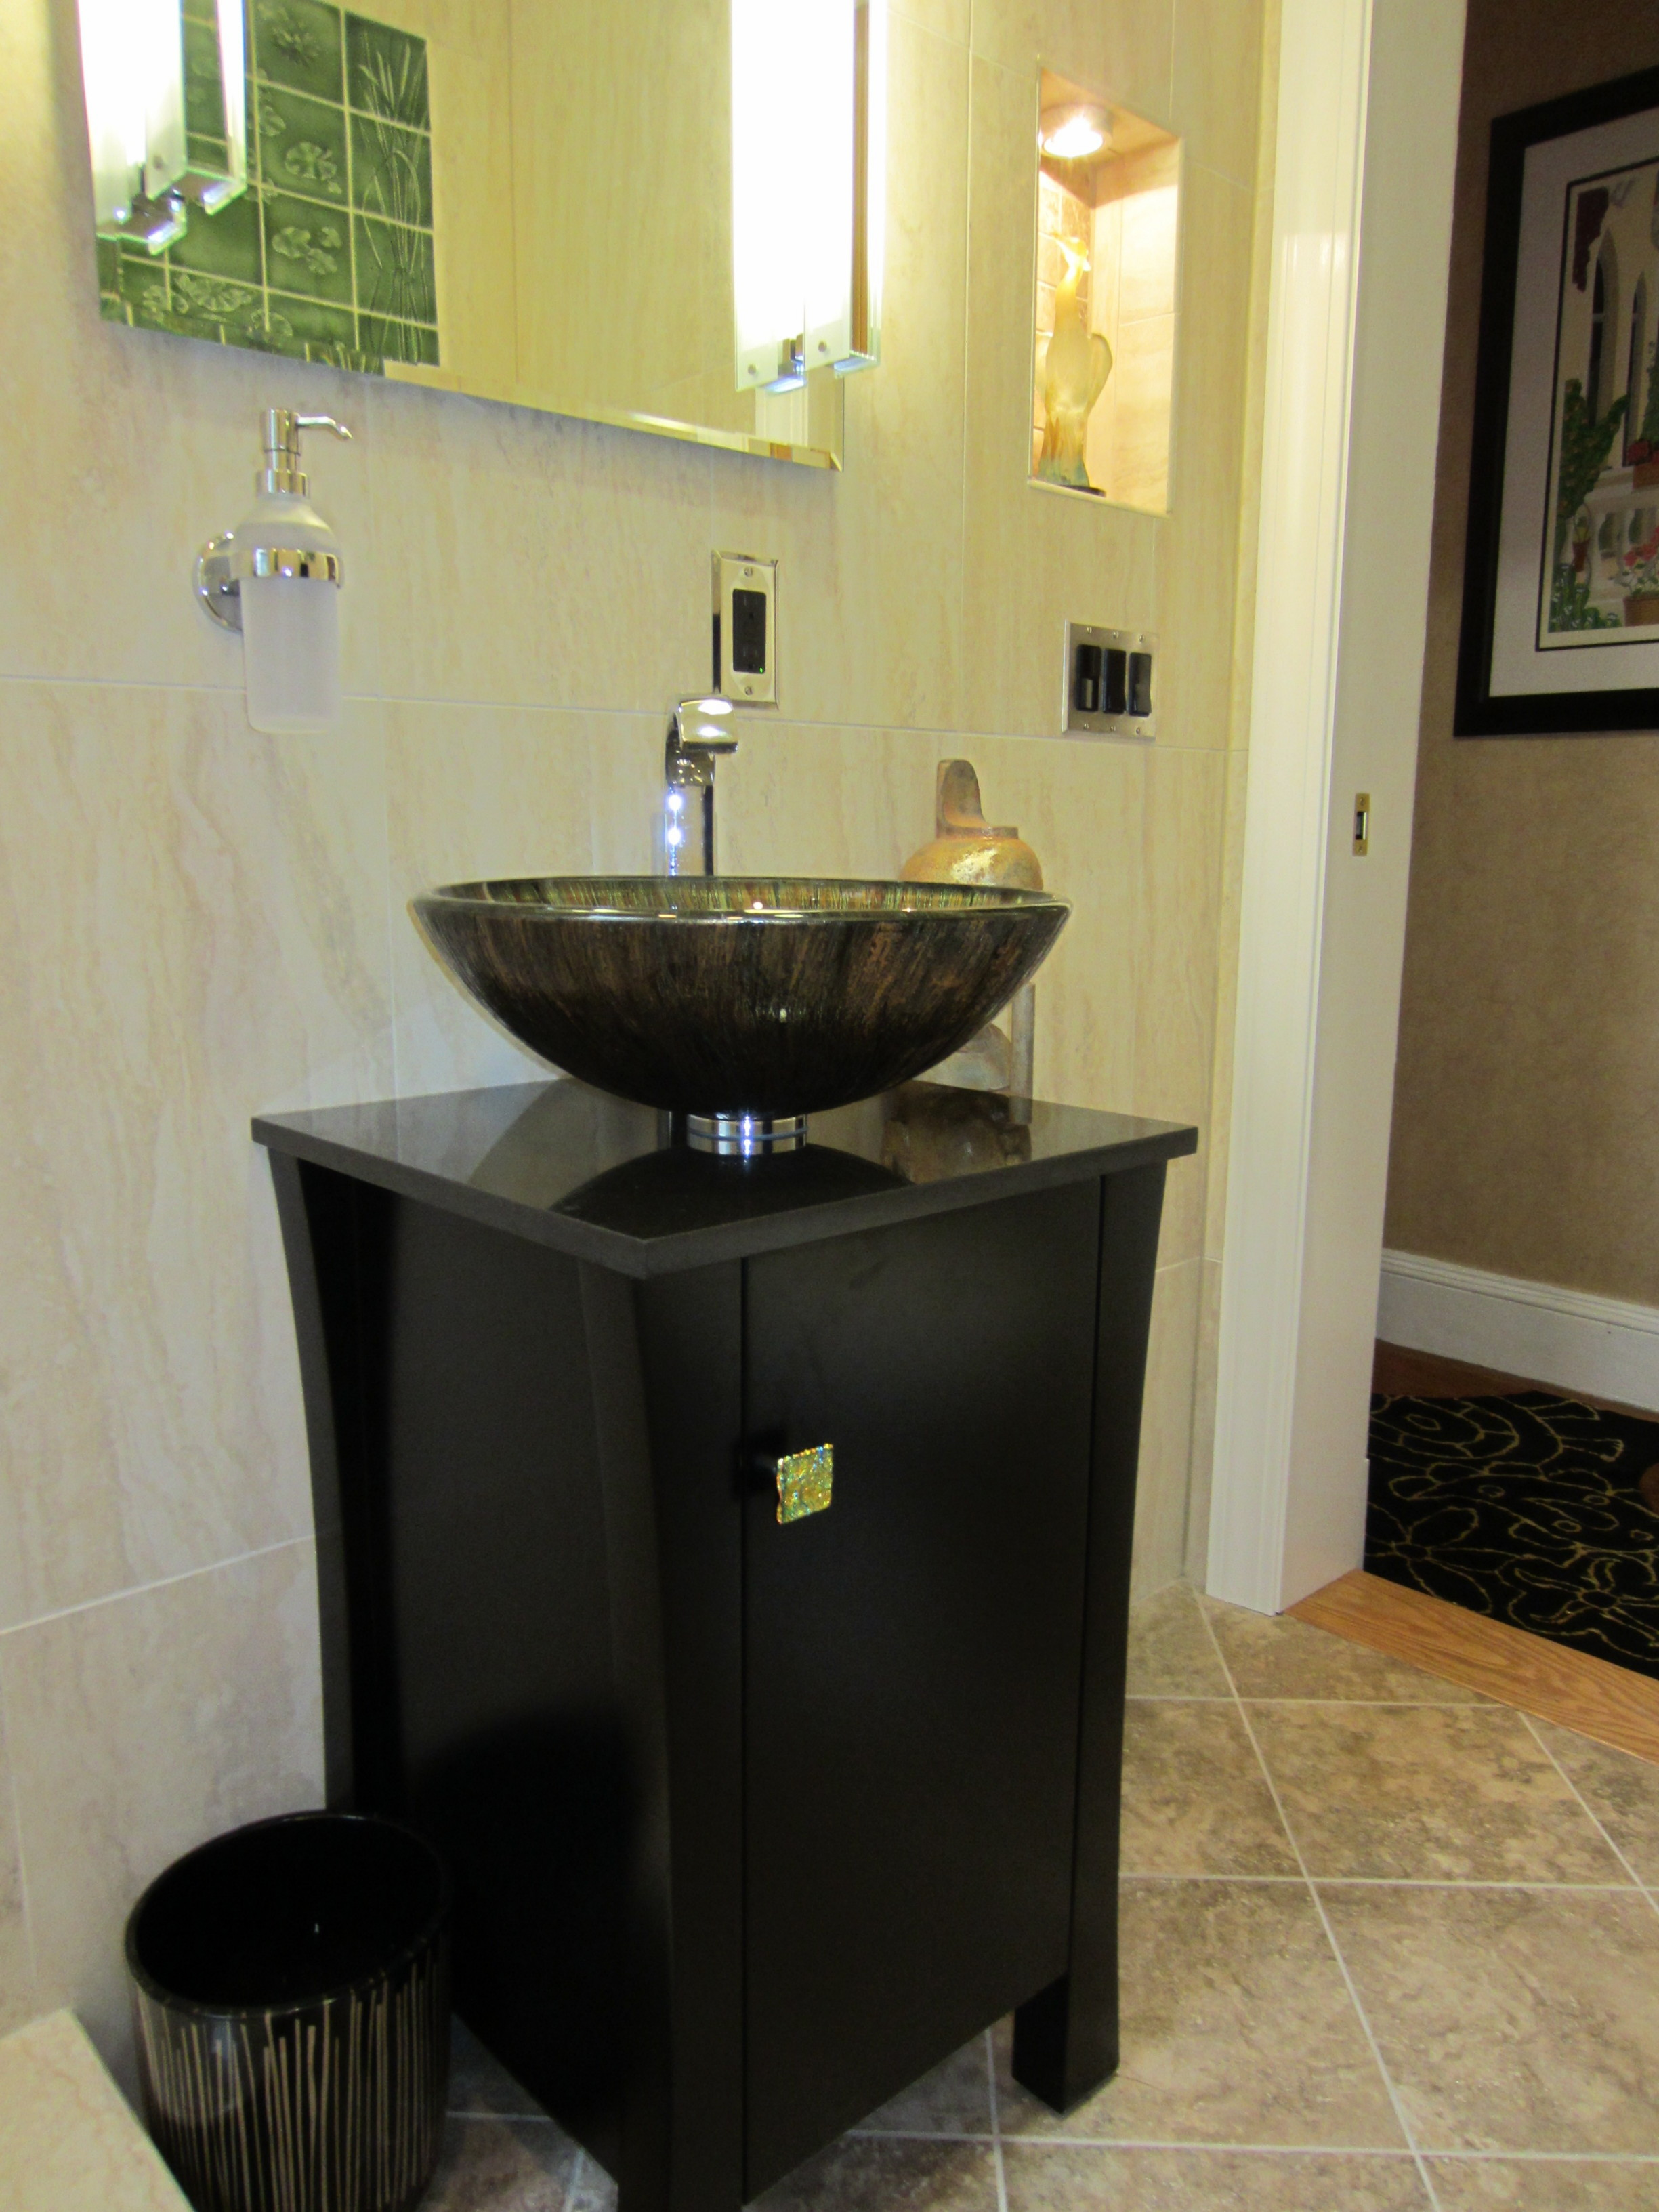 Bathroom Remodeling Boston Andover North Andover Lexington - Bathroom remodeling boston